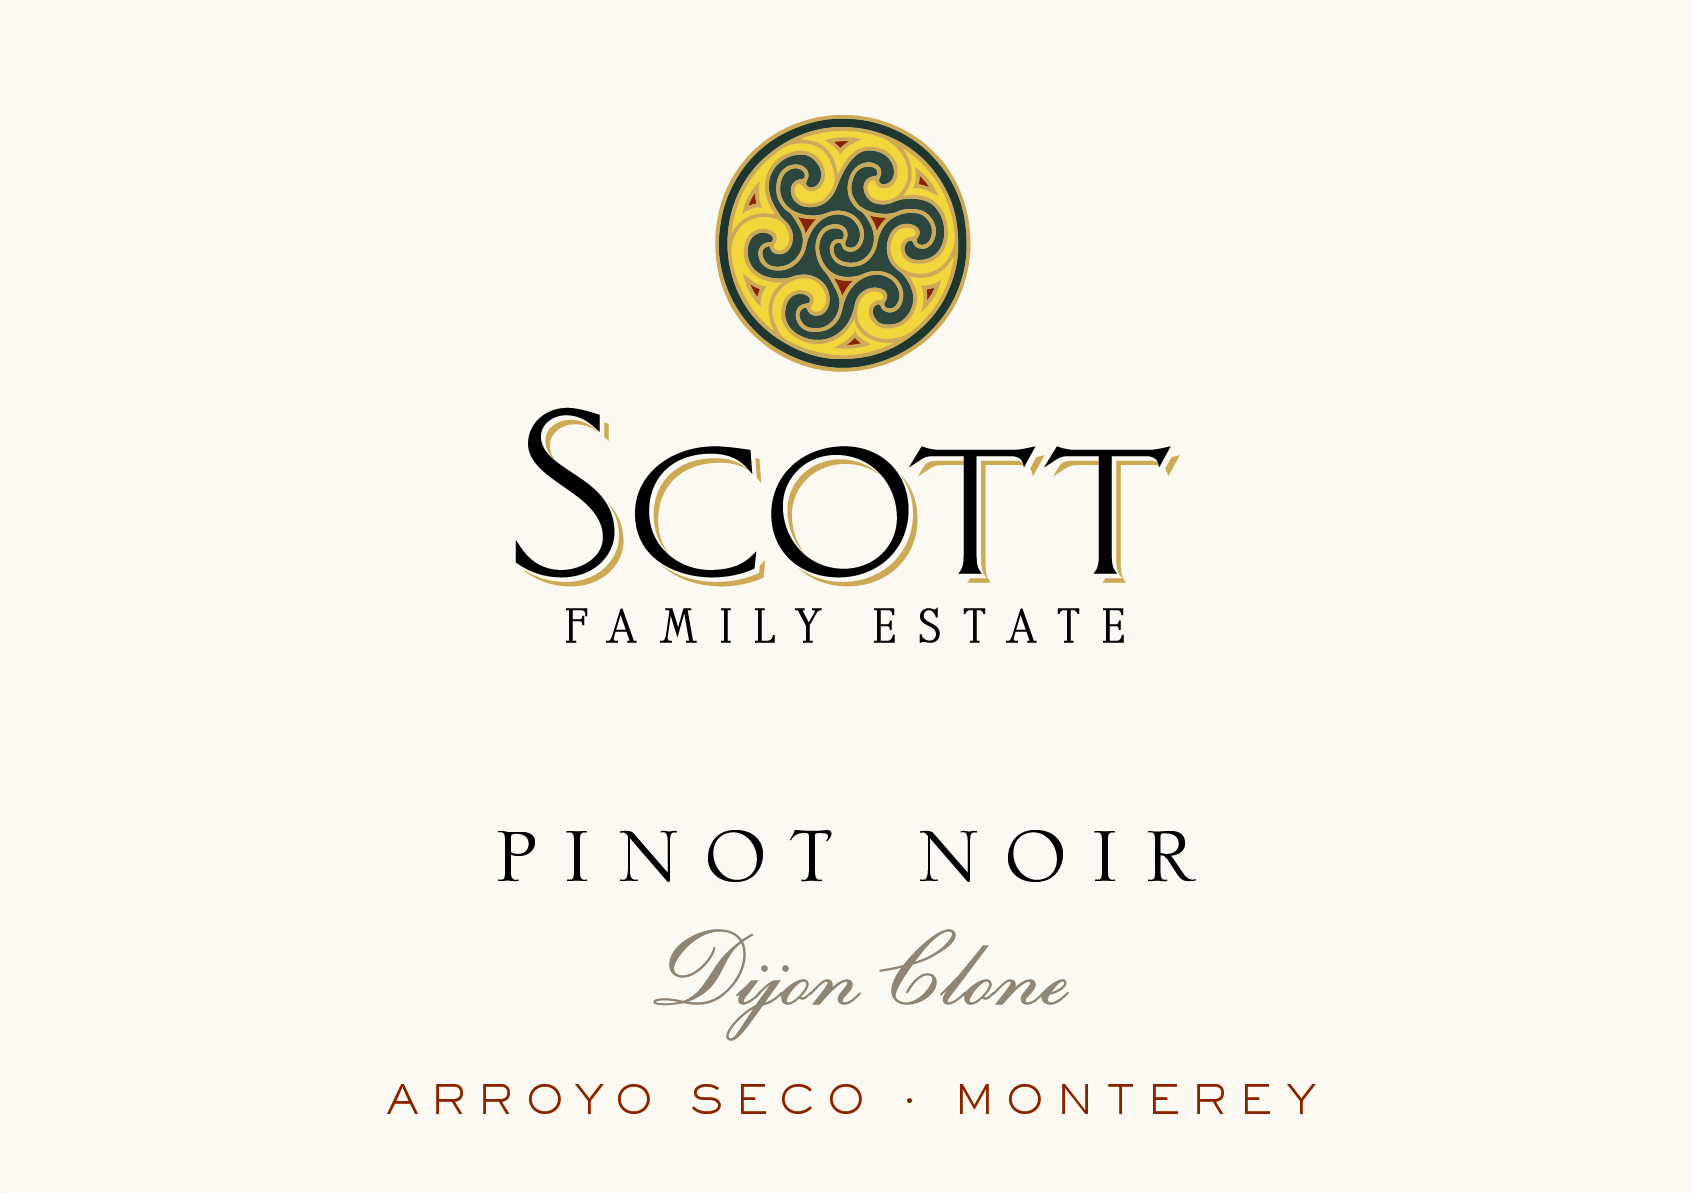 2015 Scott Family Estate Pinot Noir Dijon Clone